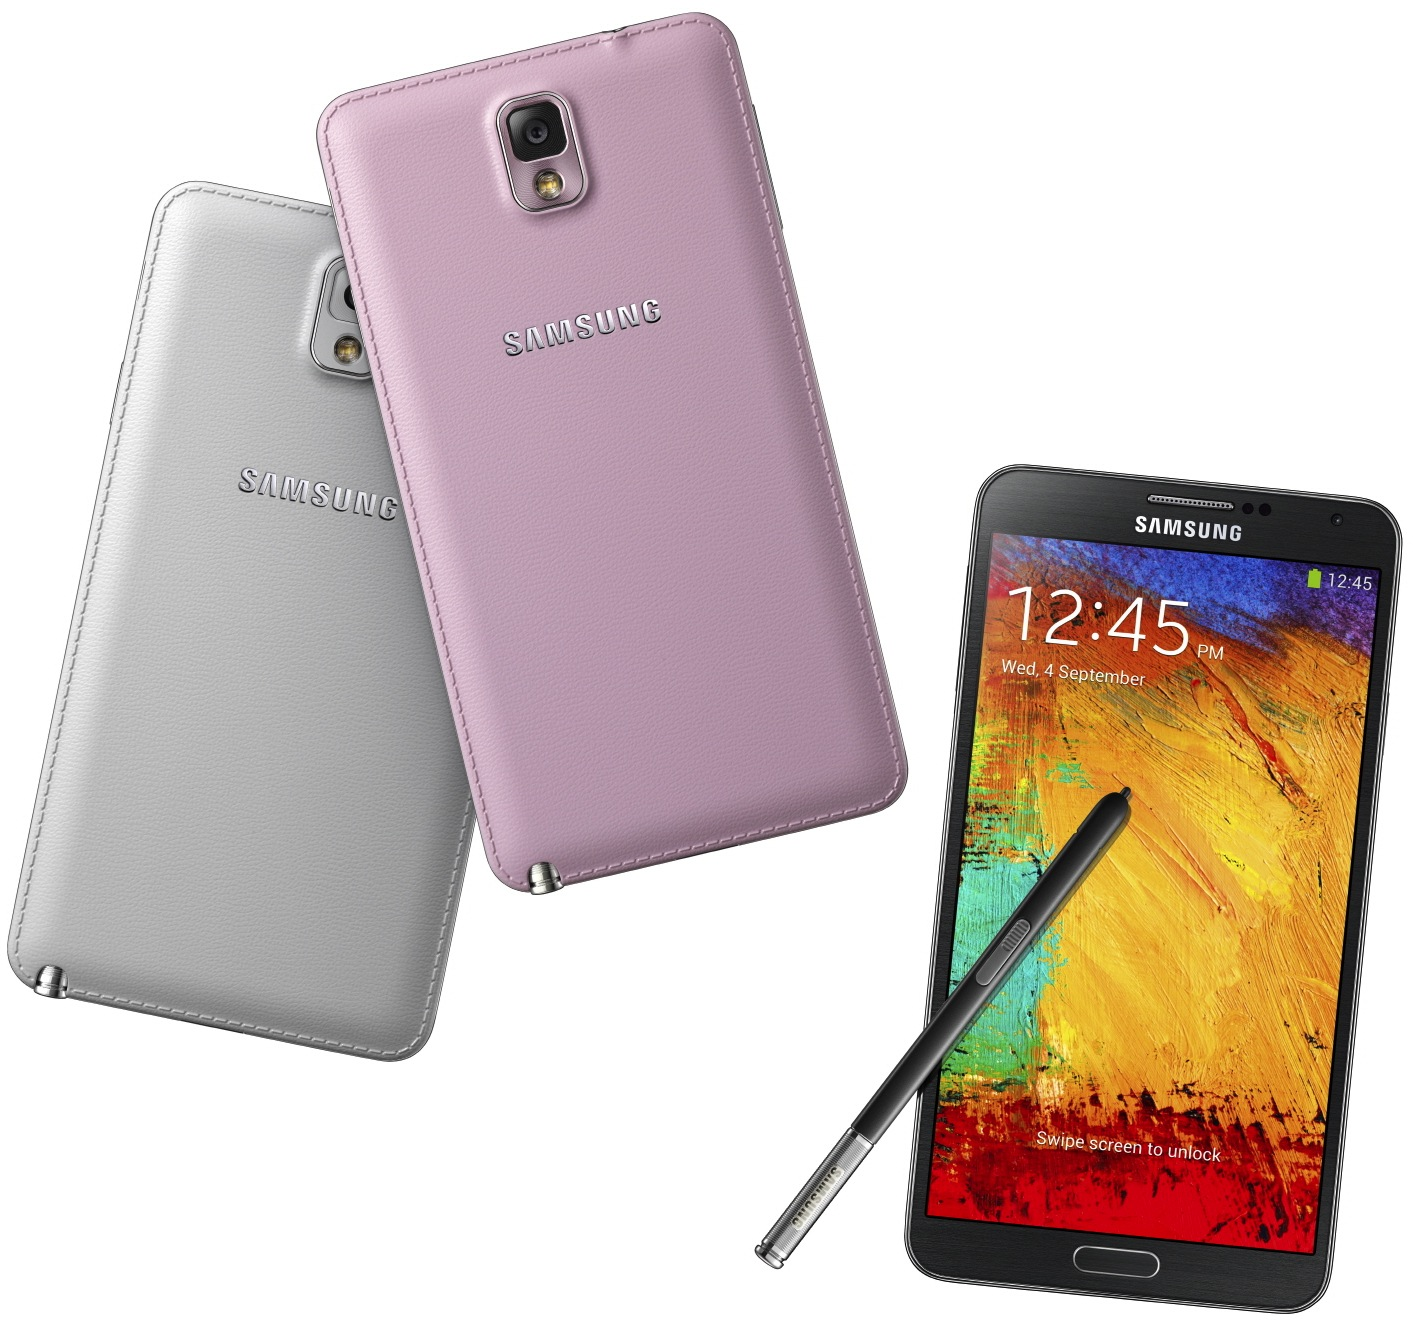 Galxy Note3 030 set1 Samsung launches the Galaxy Note 3: 5.7 1080p display, Android 4.3, 13MP camera and new S Pen features